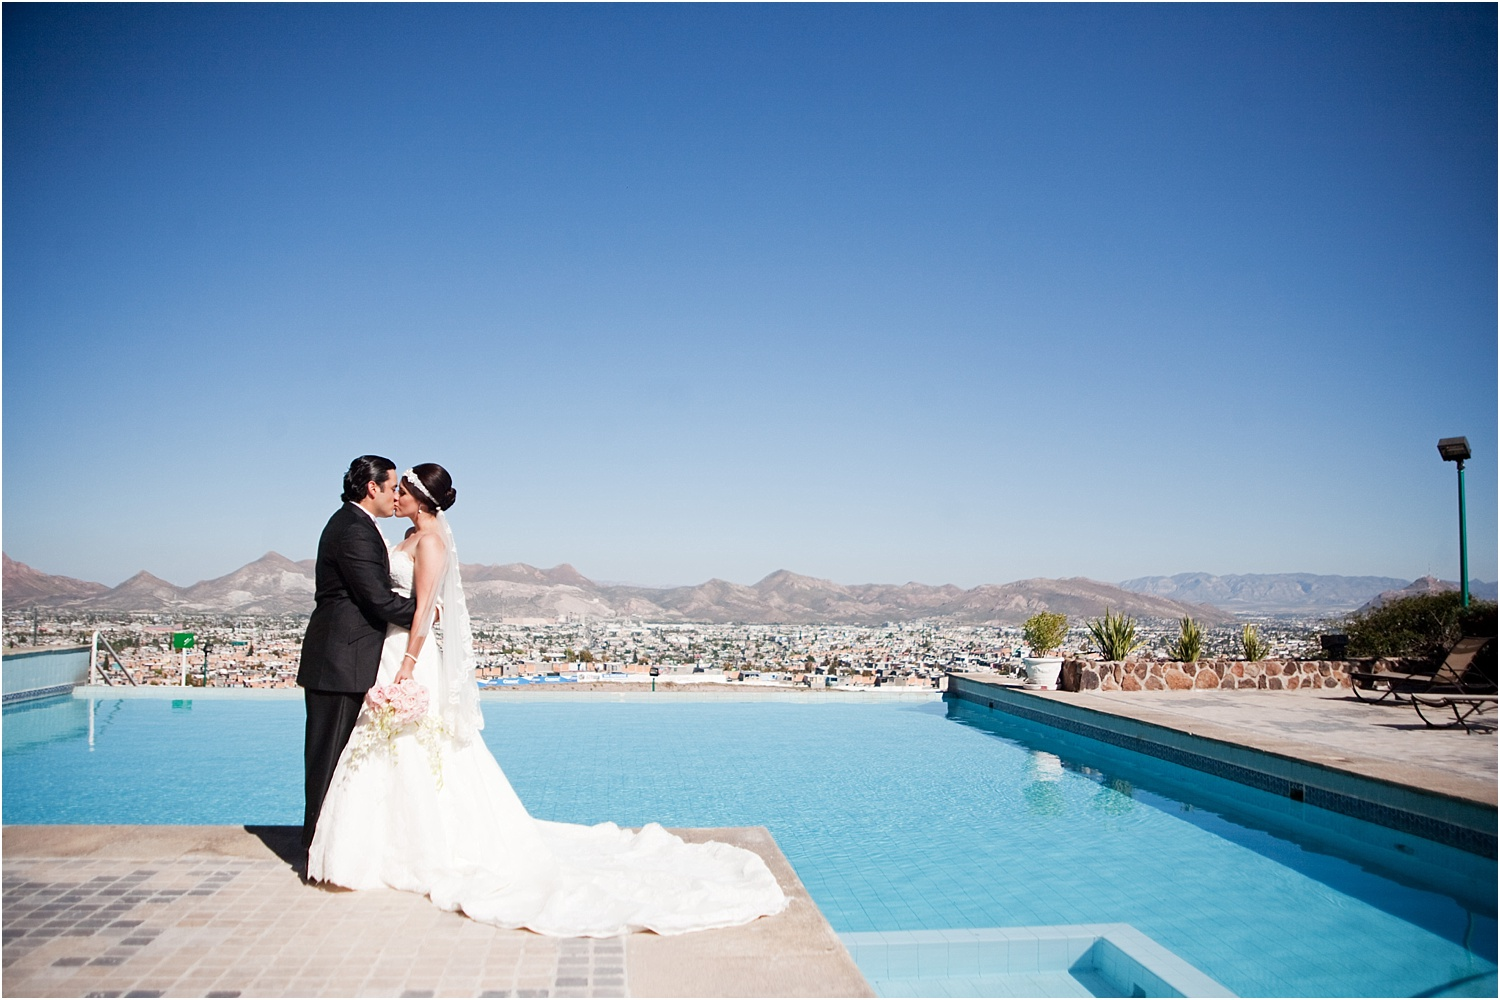 bride and groom kissing by a pool - How to do Portrait Photography in Bright Midday Sun